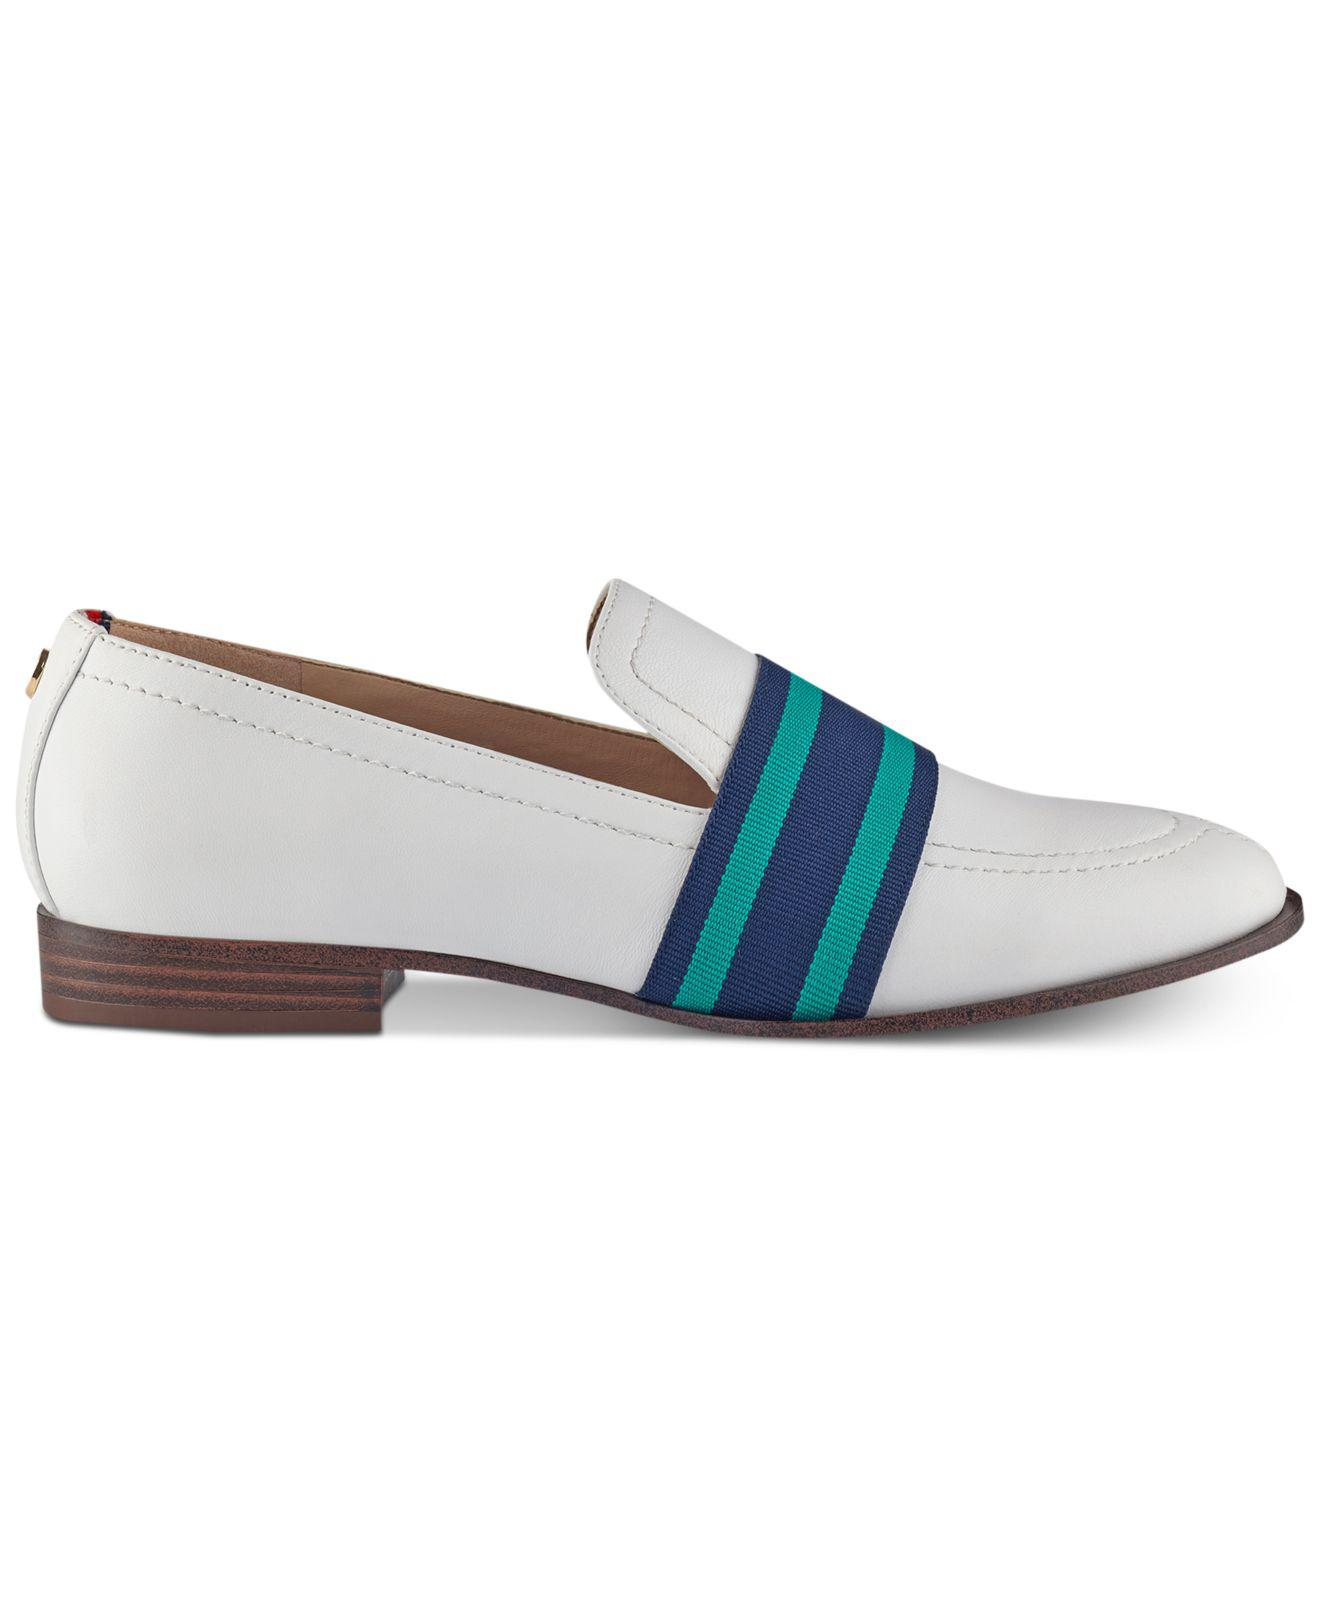 7a3362787 Lyst - Tommy Hilfiger Ignaz Loafers in White